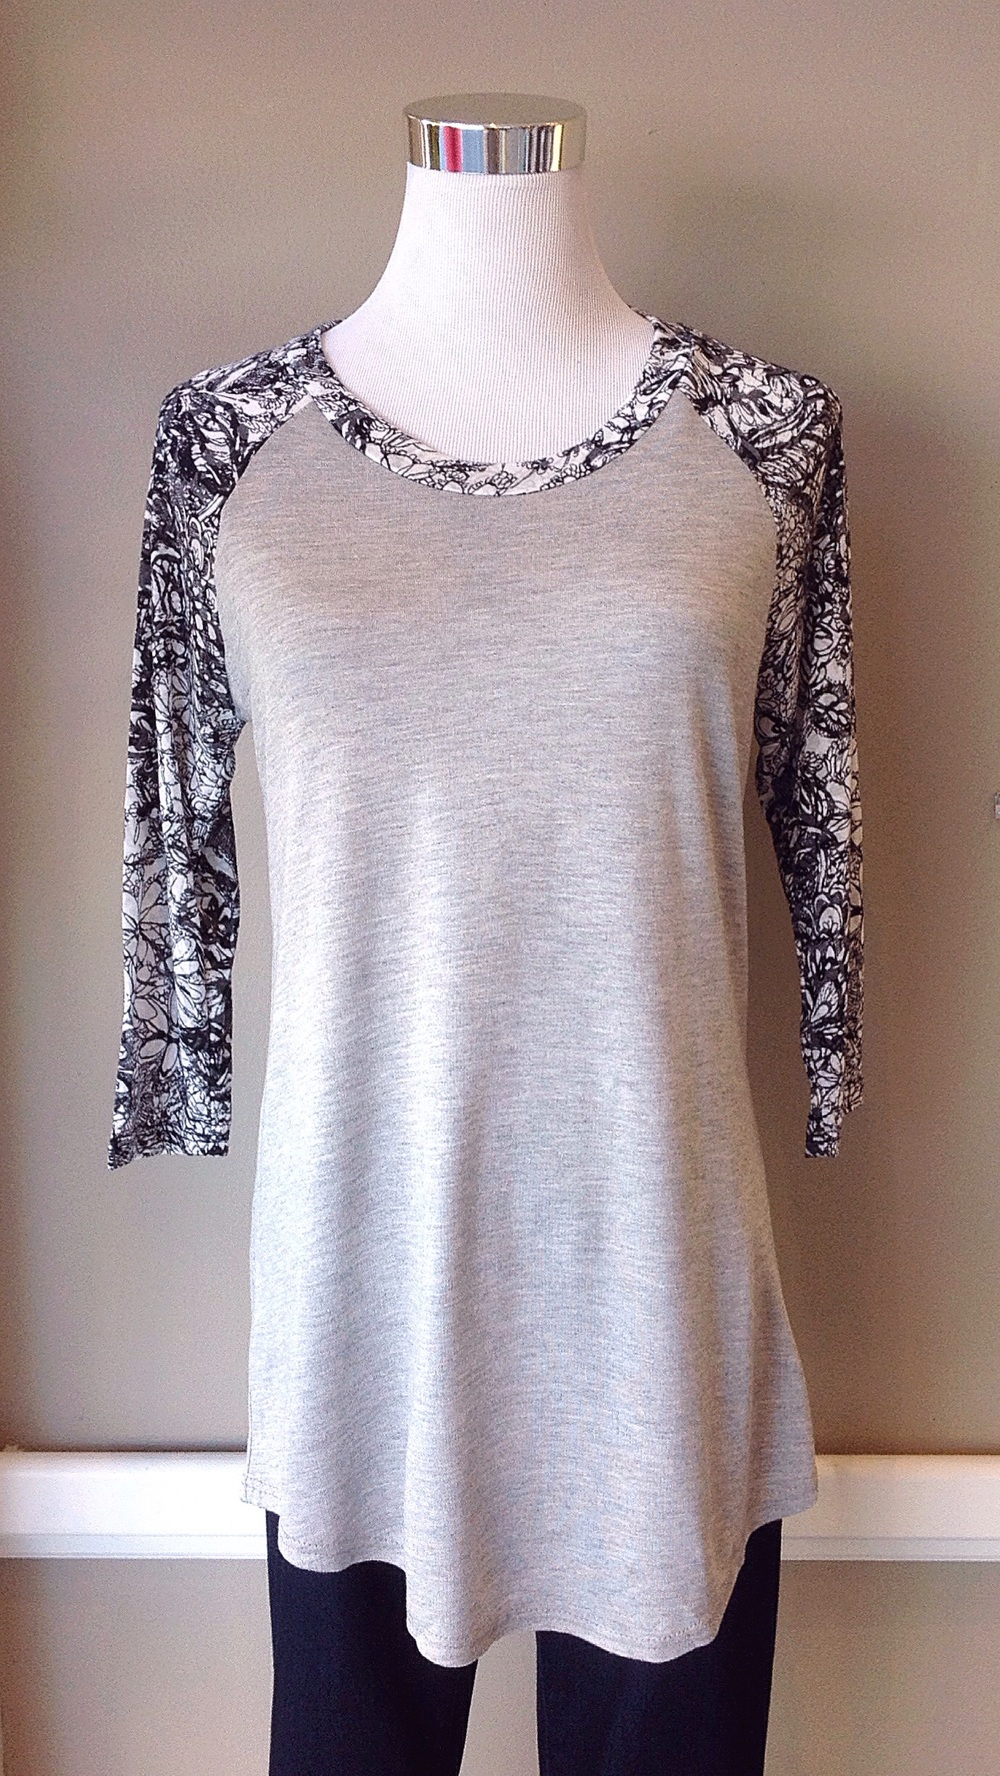 Grey baseball top with charcoal/black floral sleeves, $28